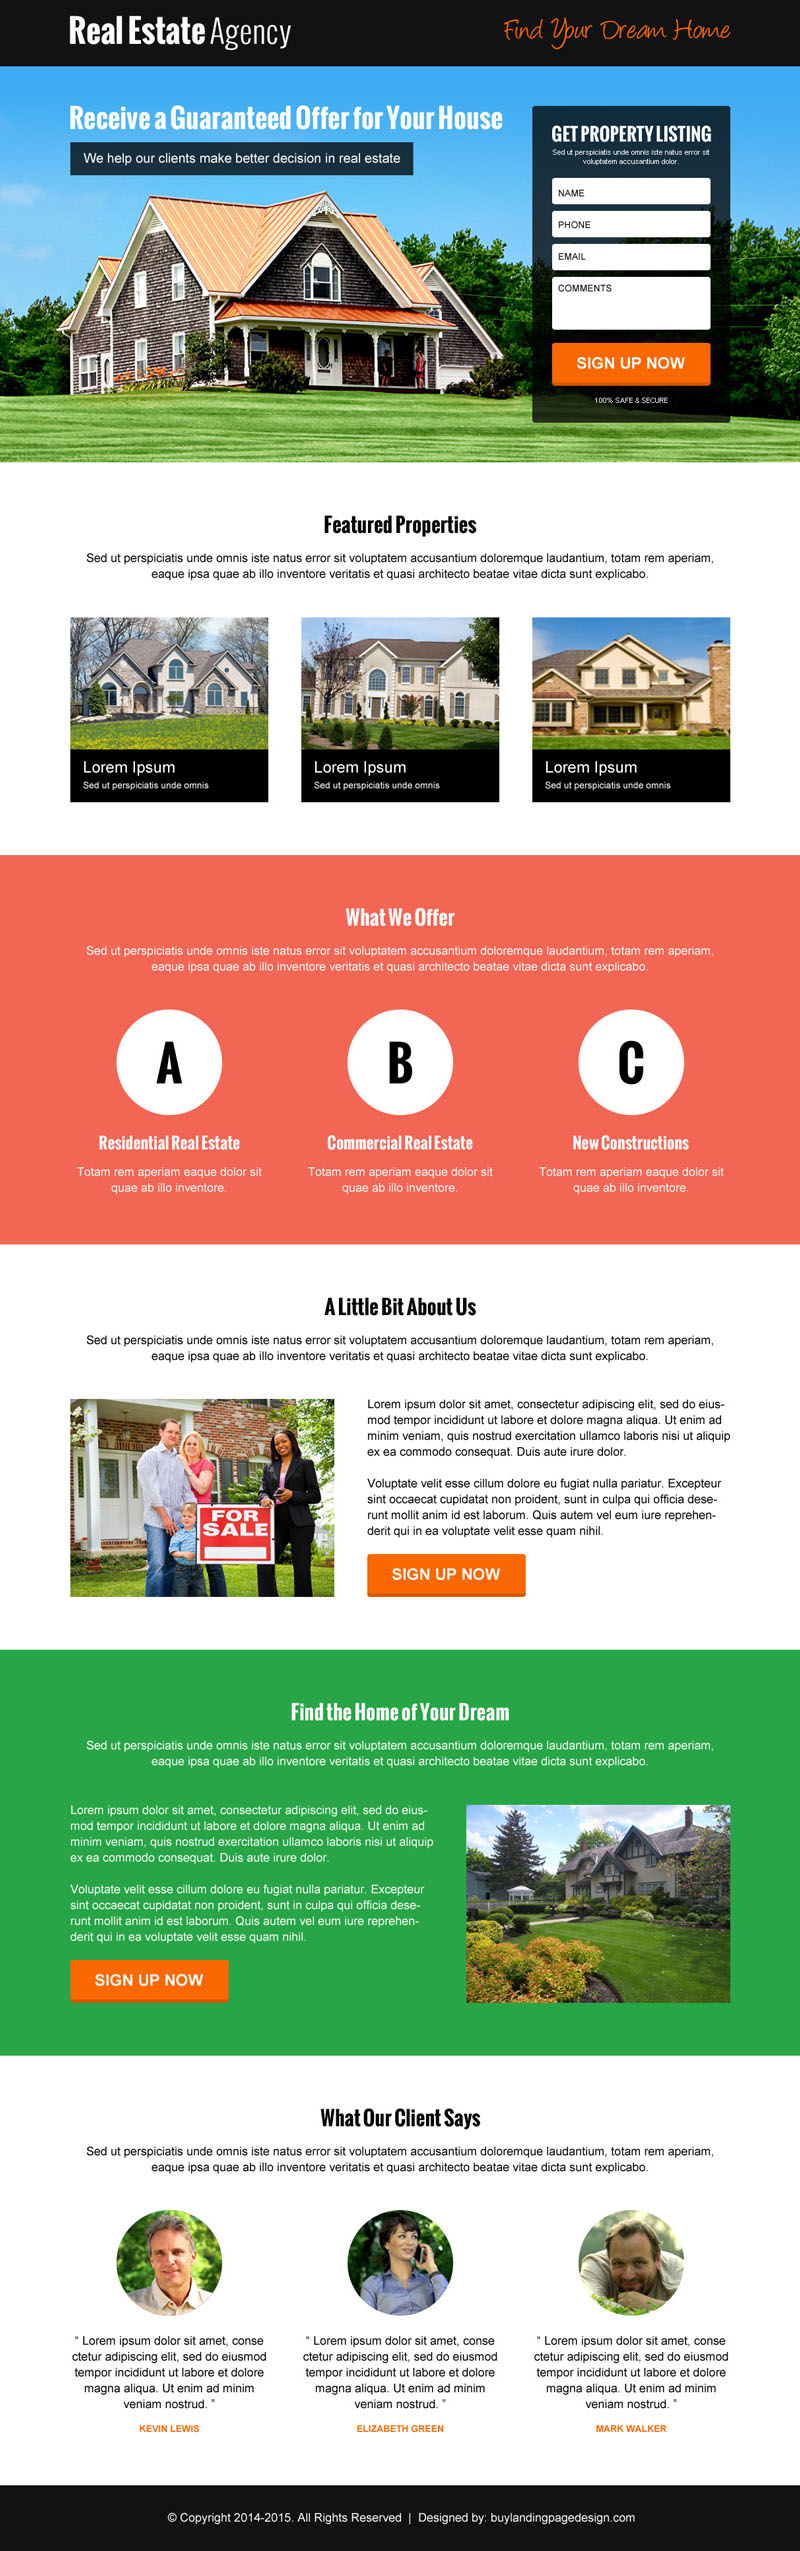 real-estate-leads-agency-landing-page-07